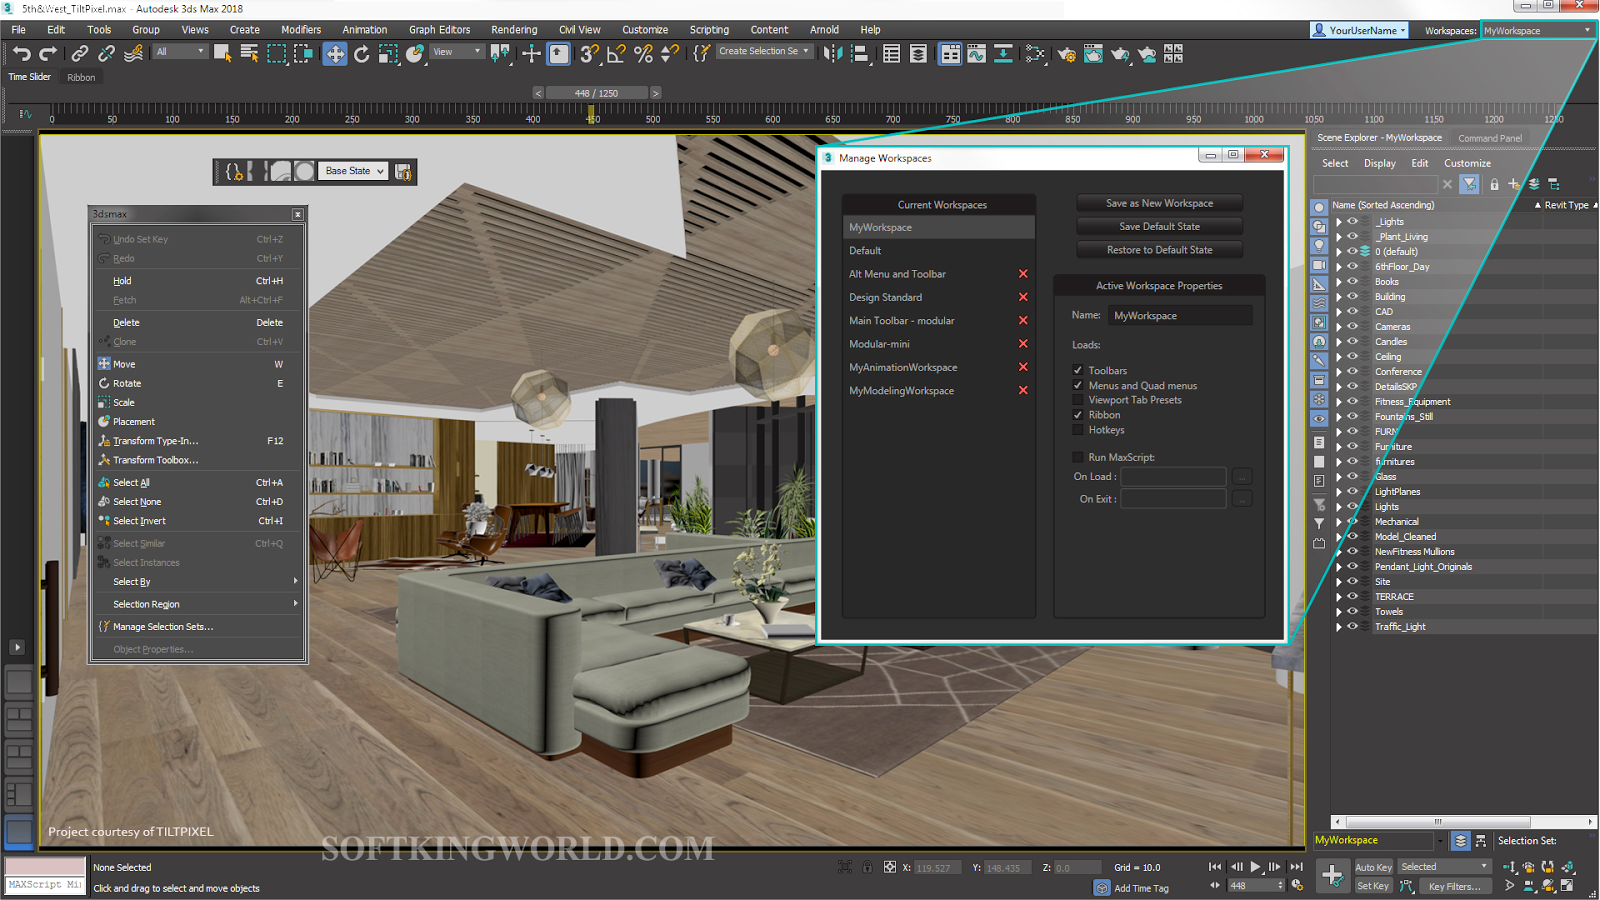 Autodesk 3ds Max 2018 Latest Version Download Softkin